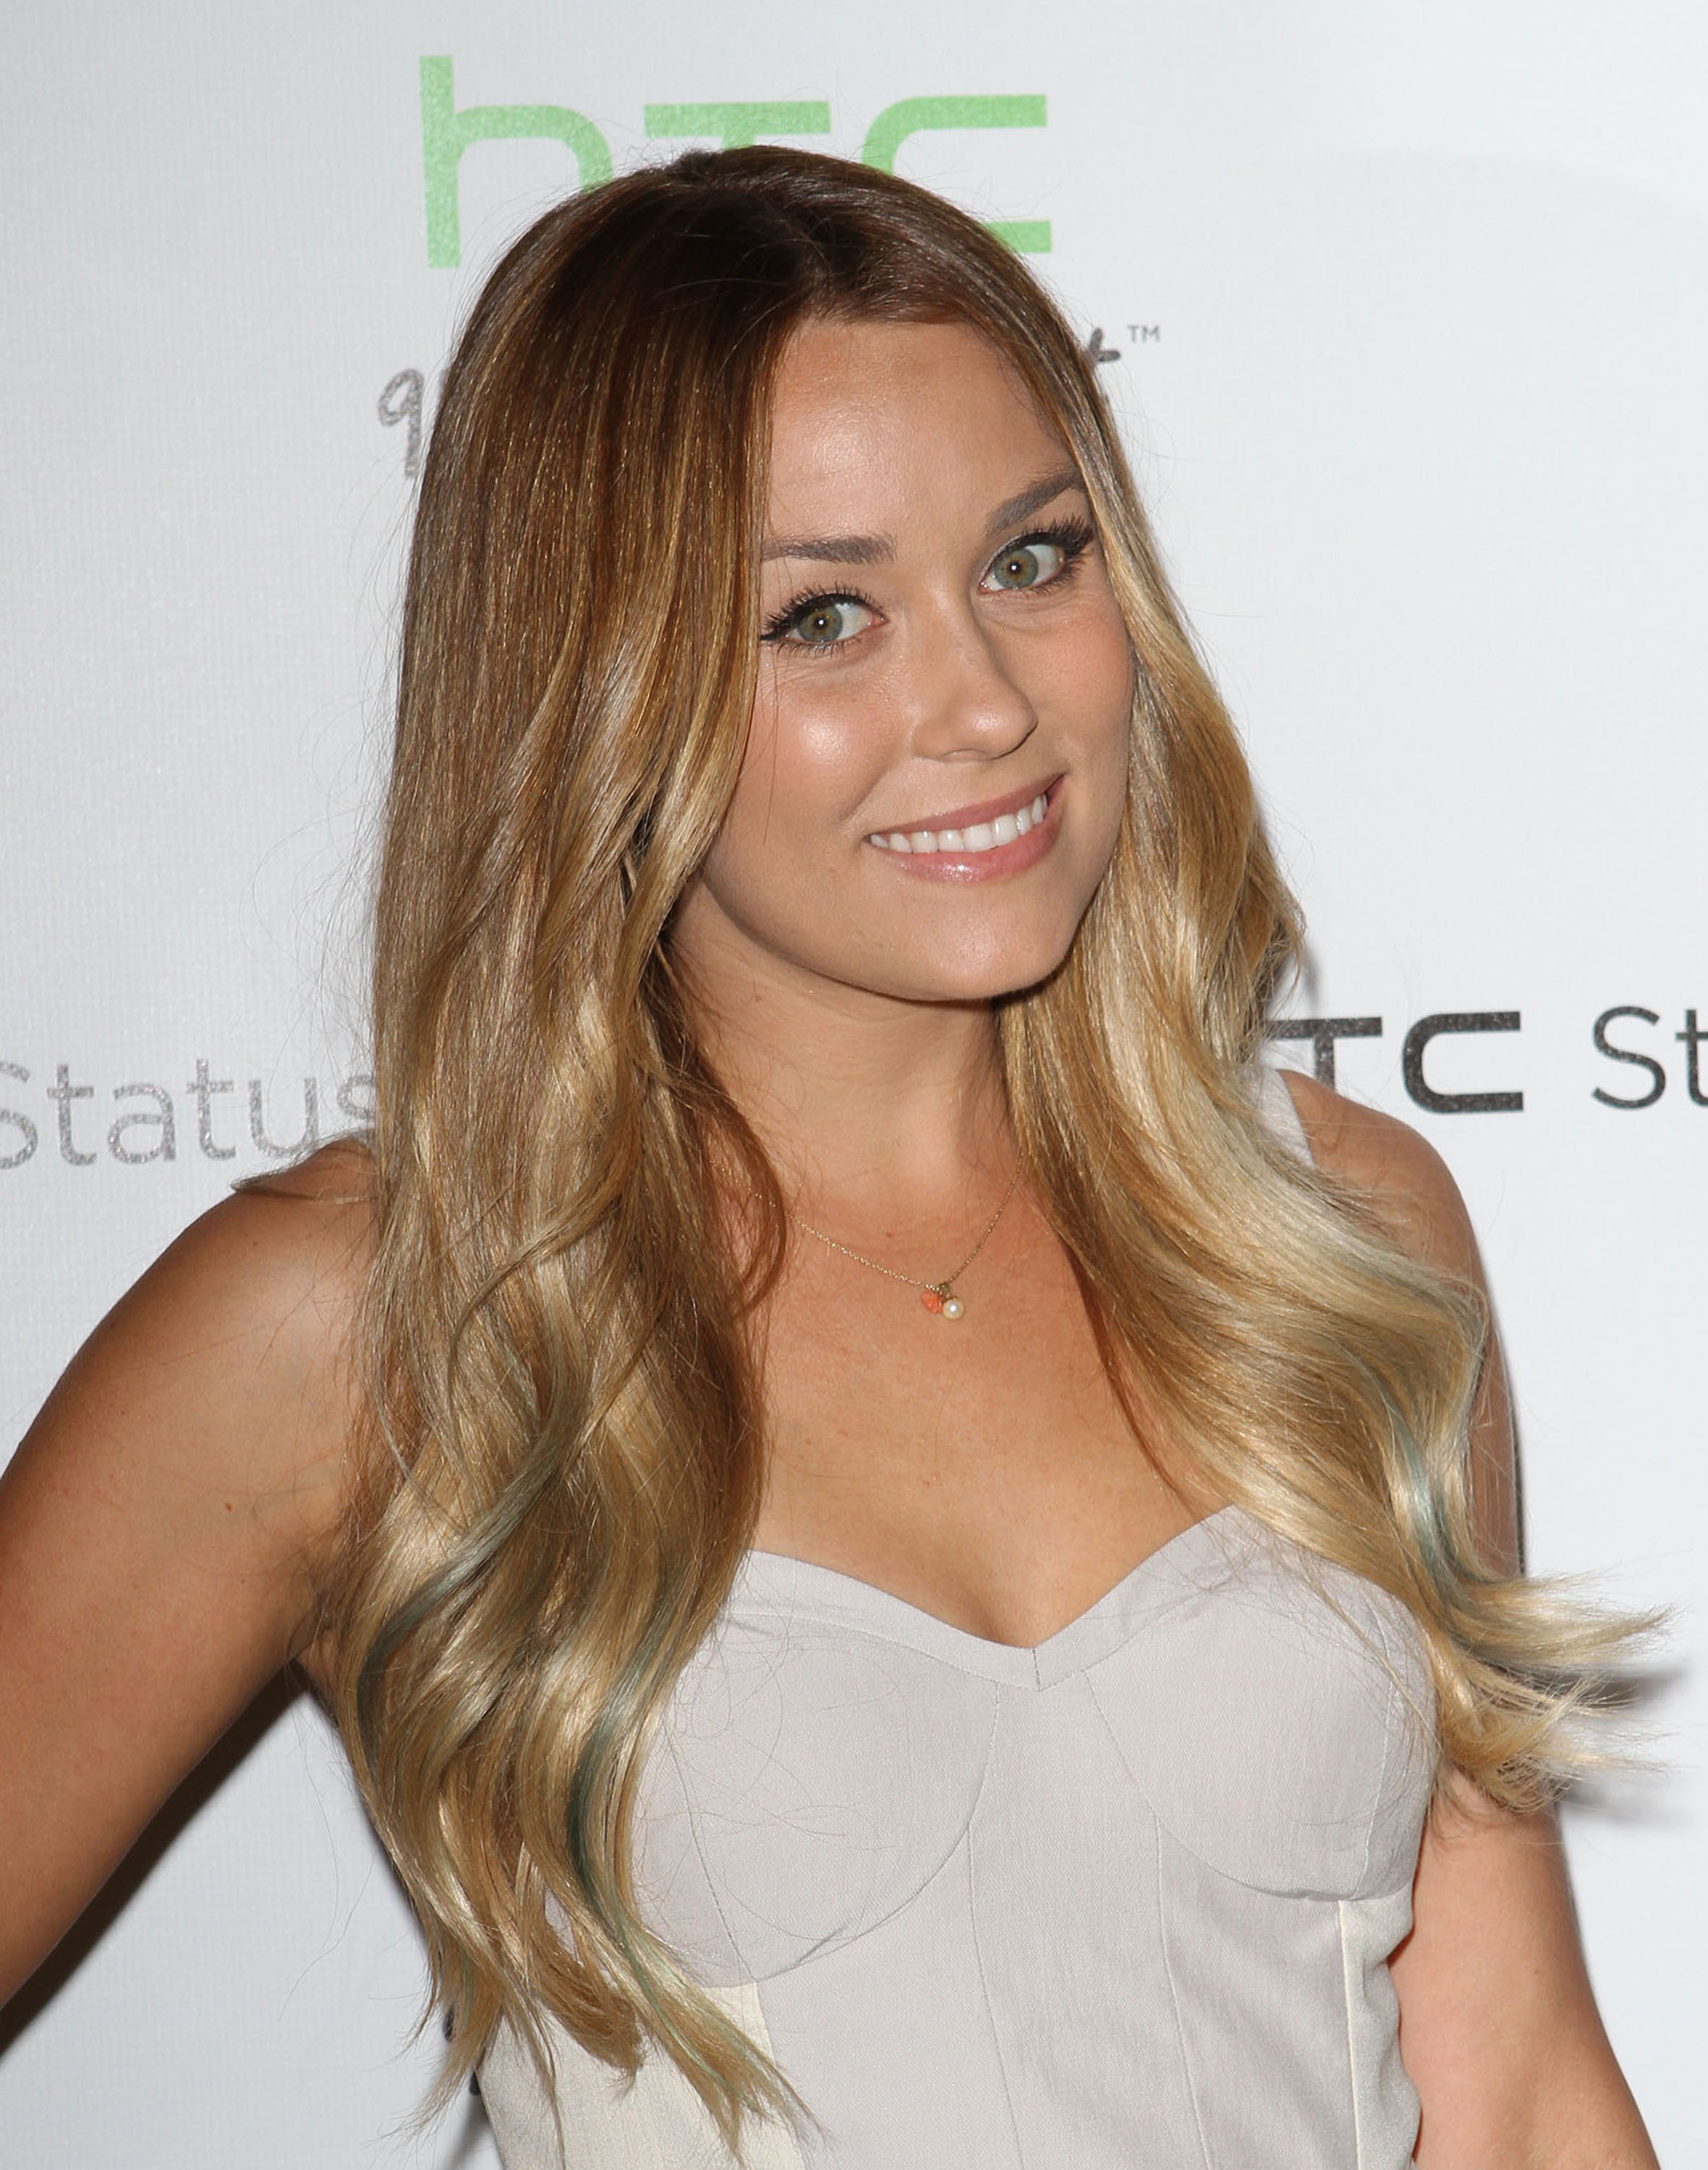 The following steps gave Lauren Conrad her hairstyle: Blow-dry hair.